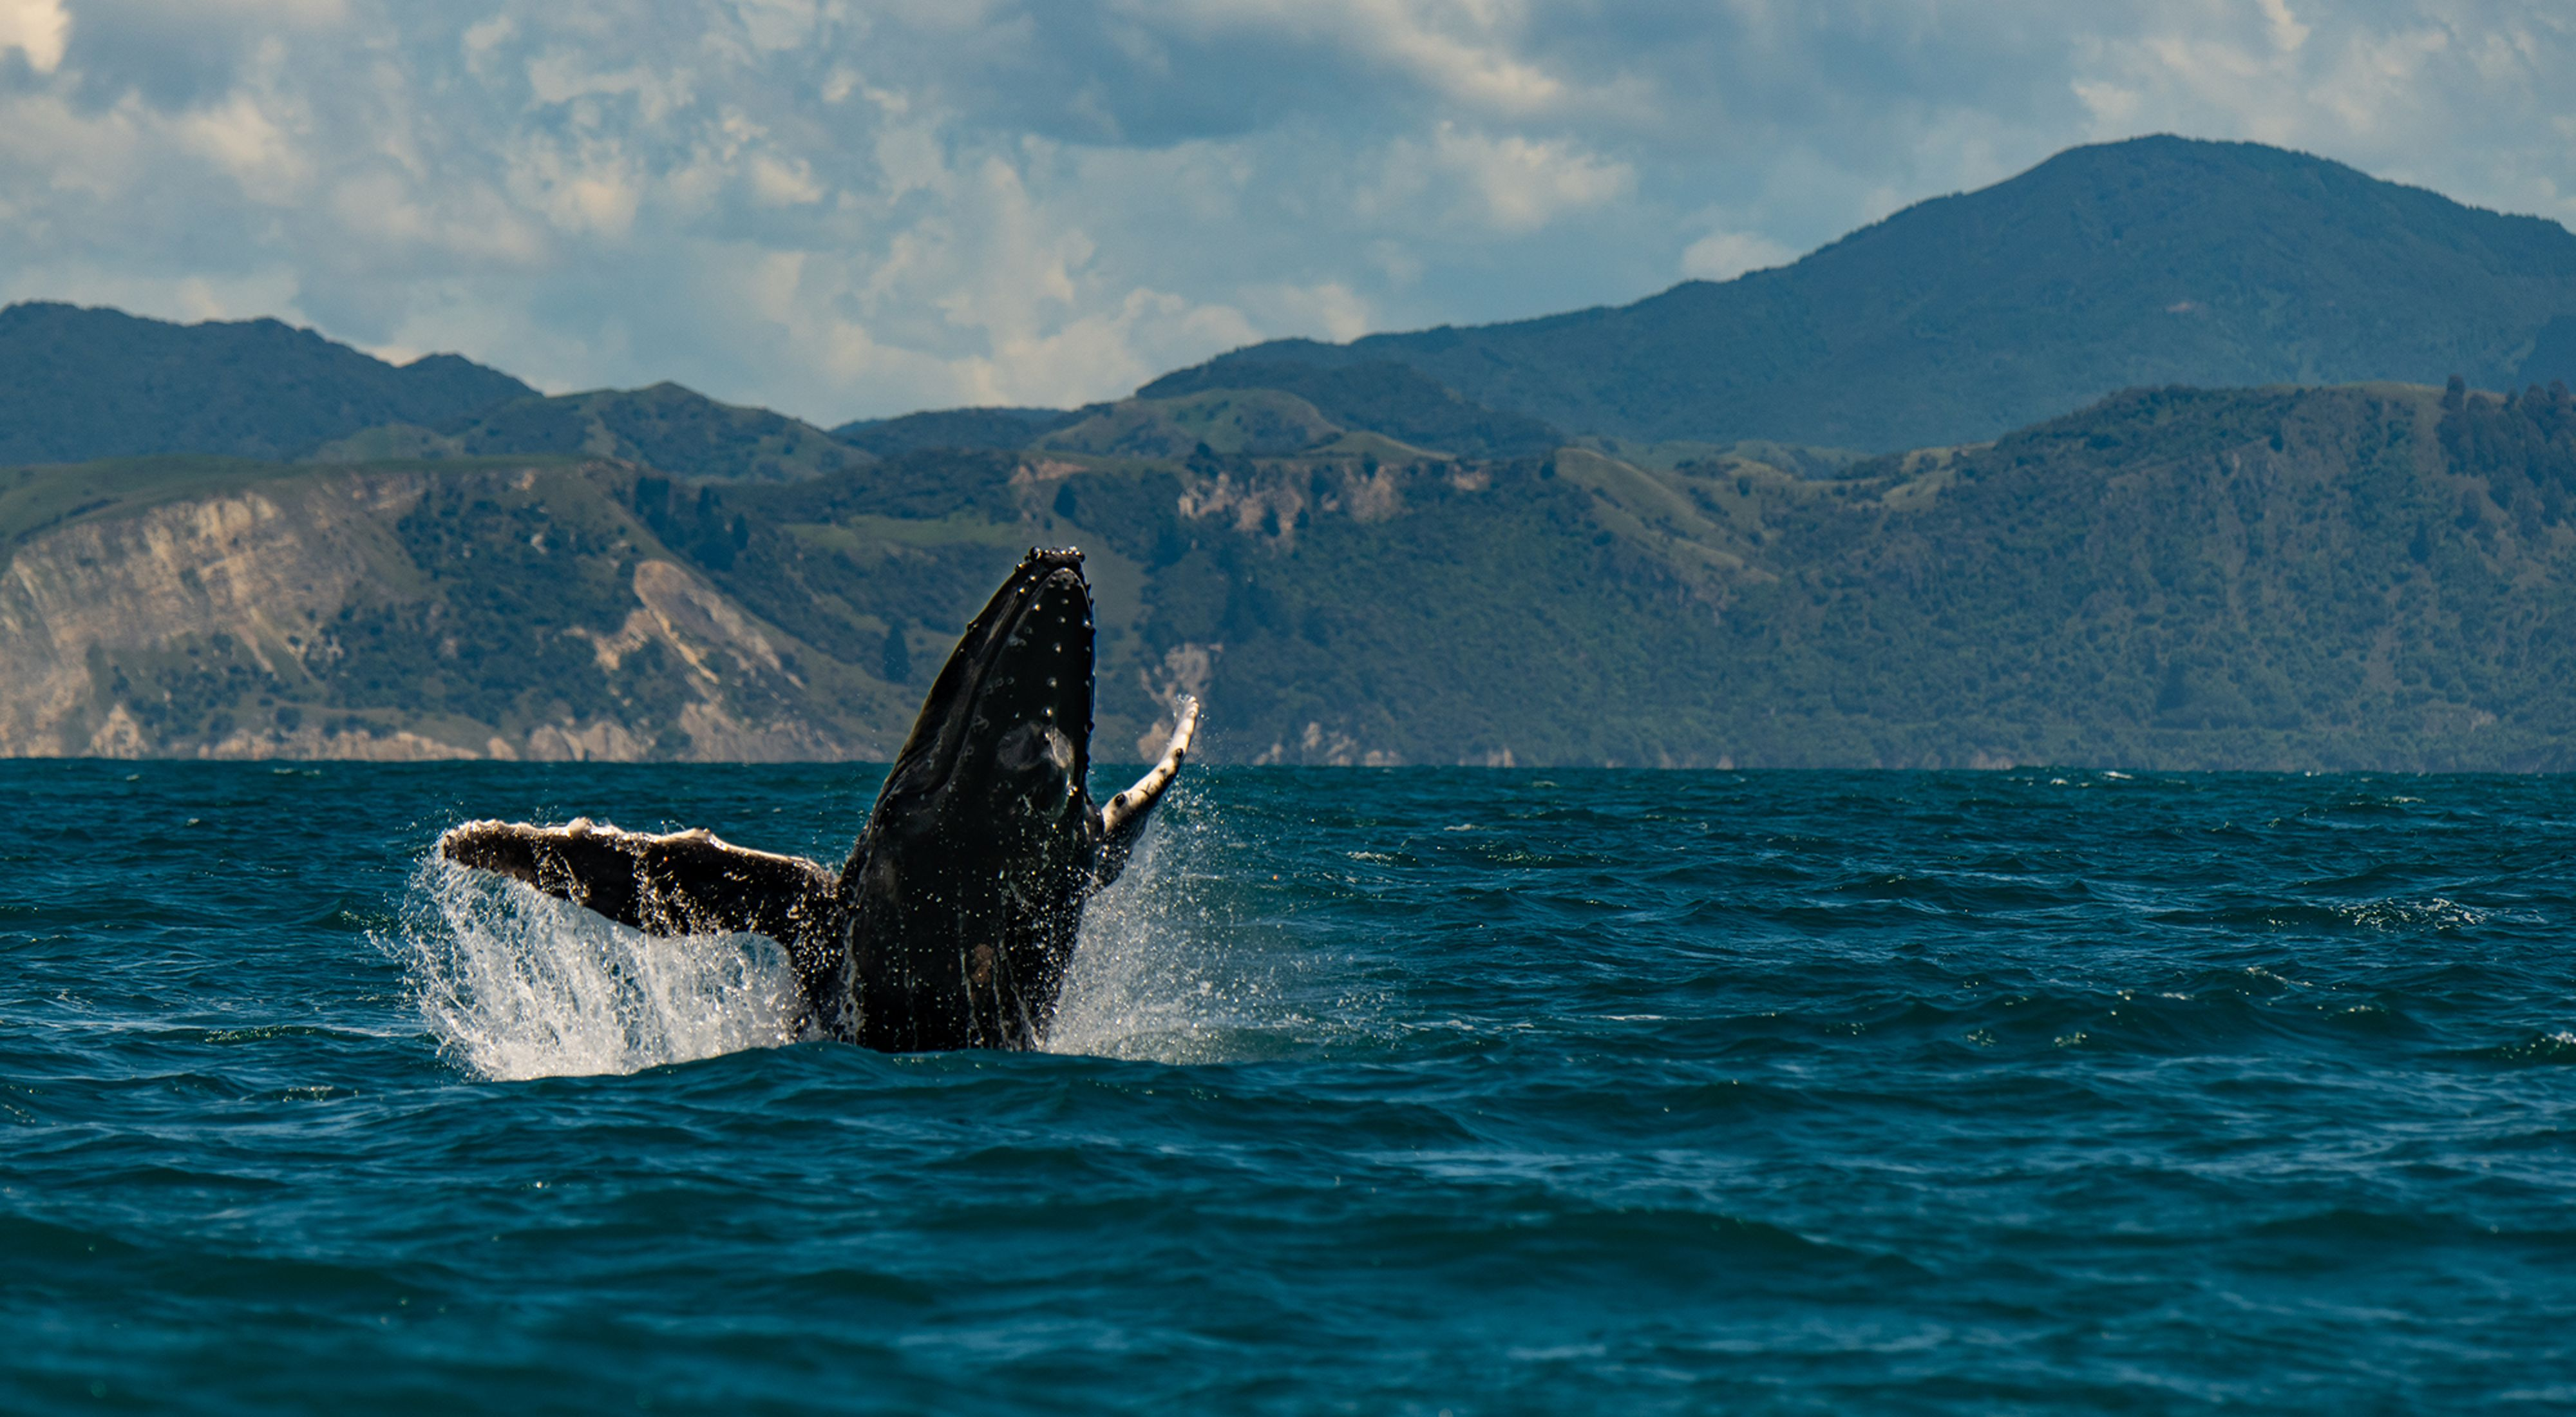 A humpback whale breaching off the coast of Kaikoura, New Zealand.